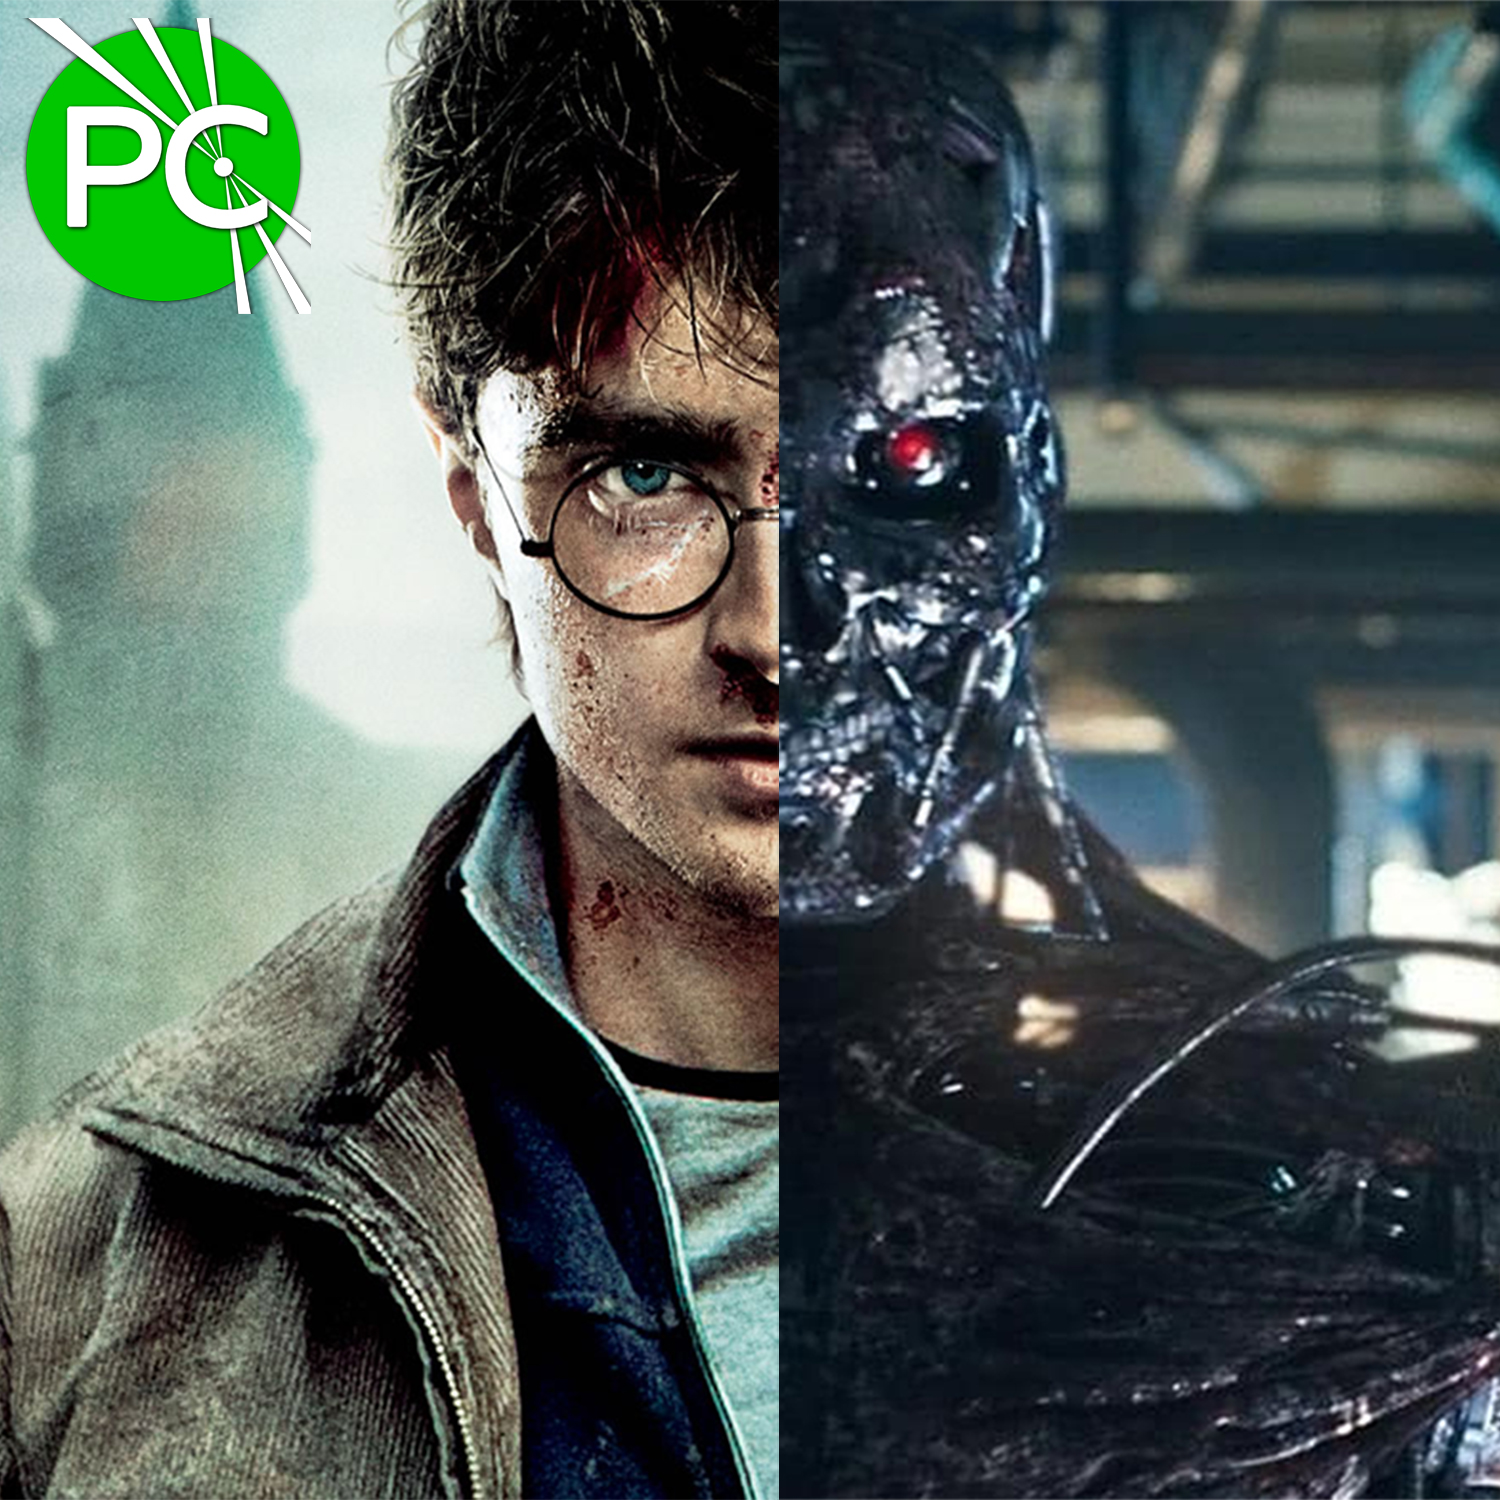 Episode 006 – Harry Potter Terminator Mashup 2 of 3